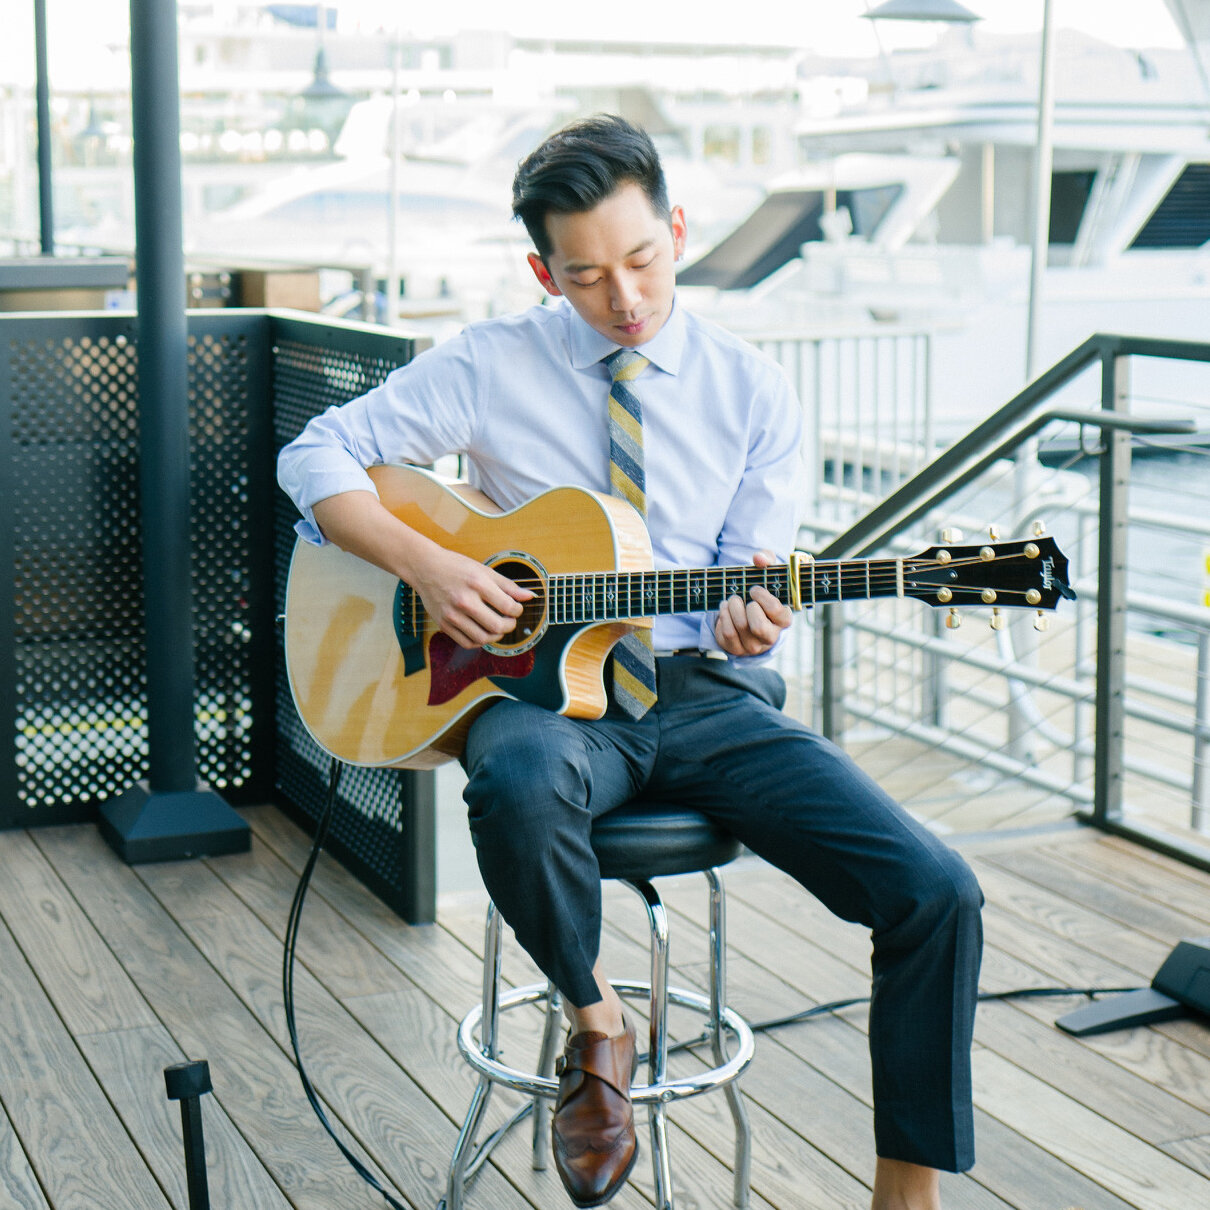 Events - Live music should be a conversation piece. My innovative genre of fingerstyle guitar will have your guests raving about my performance for days after your party.